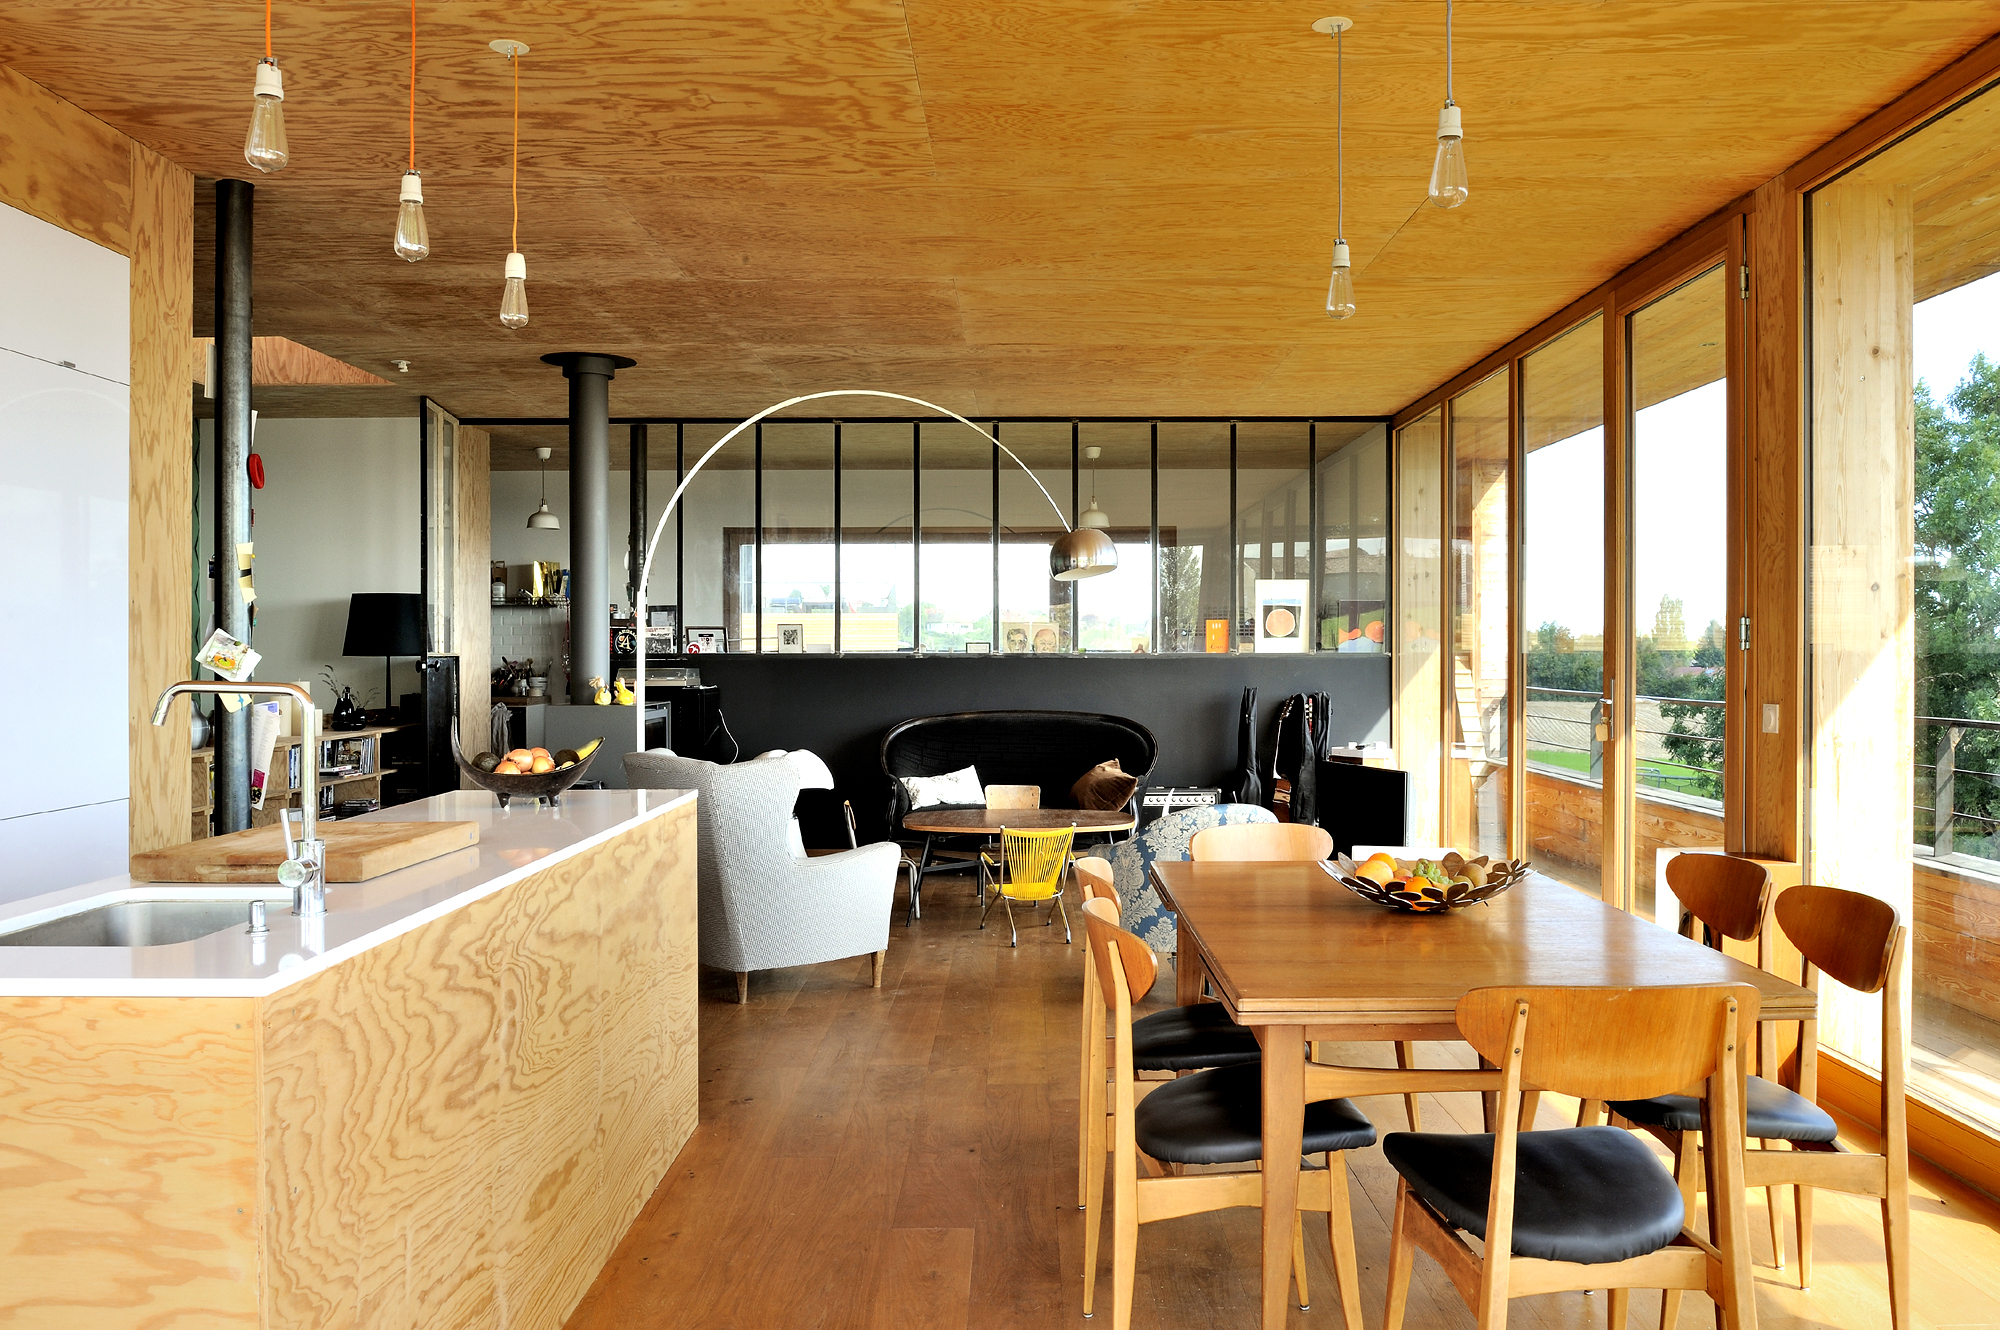 Amenagement interieur maison en bois for Interieur de maison contemporaine